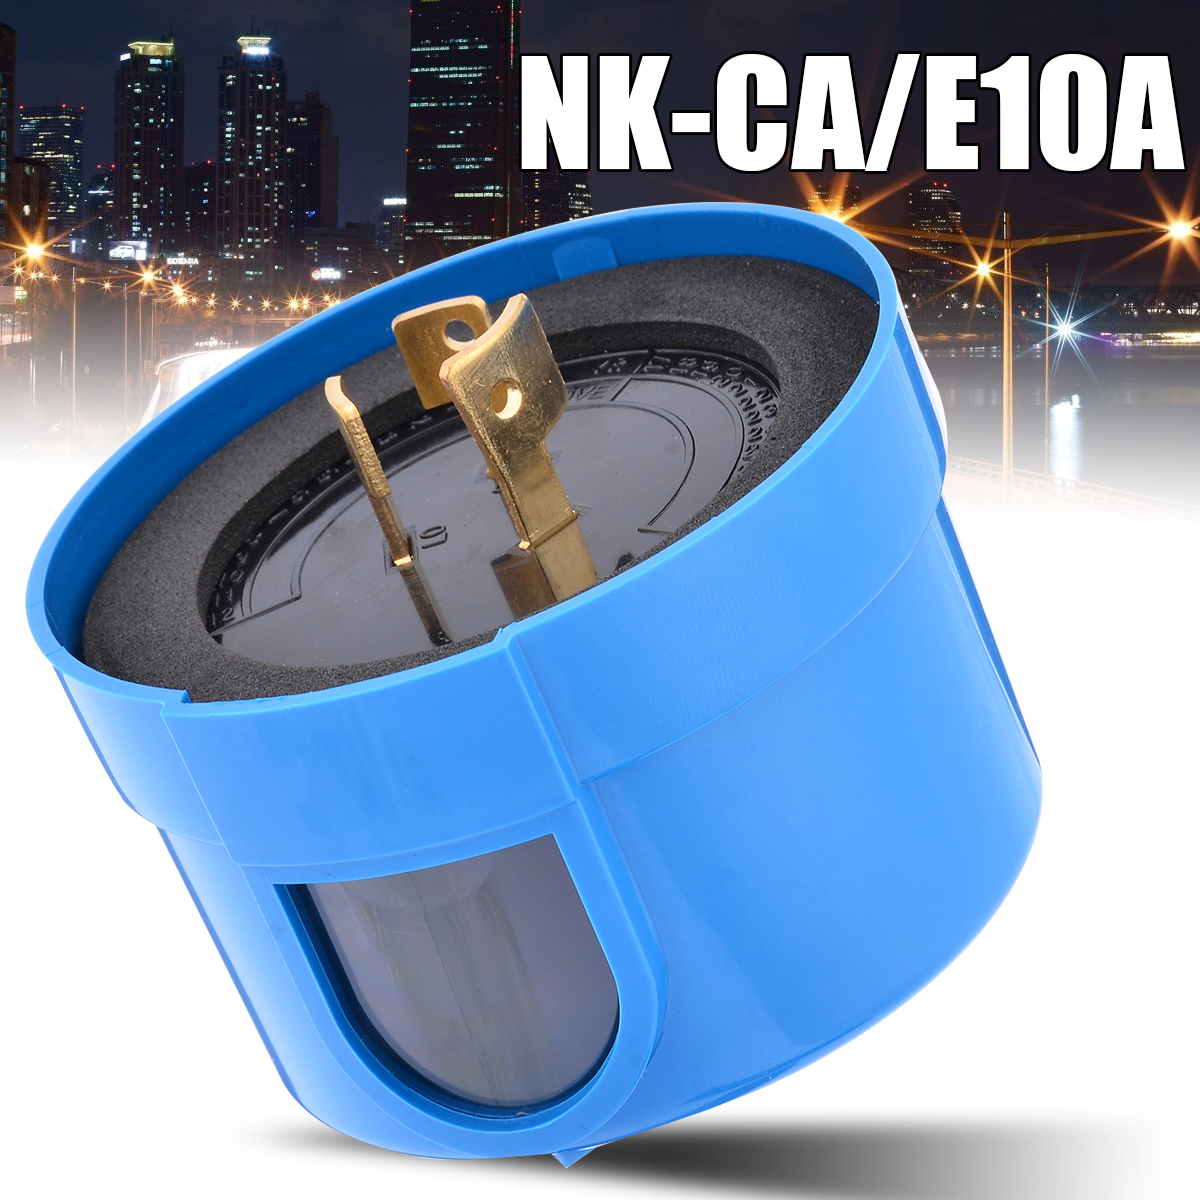 1pc NK-CA/E10A Dusk To Dawn Photoelectric Sensor Switch Photocell Control Photocell Sensor Switches Outdoor Photoswitch